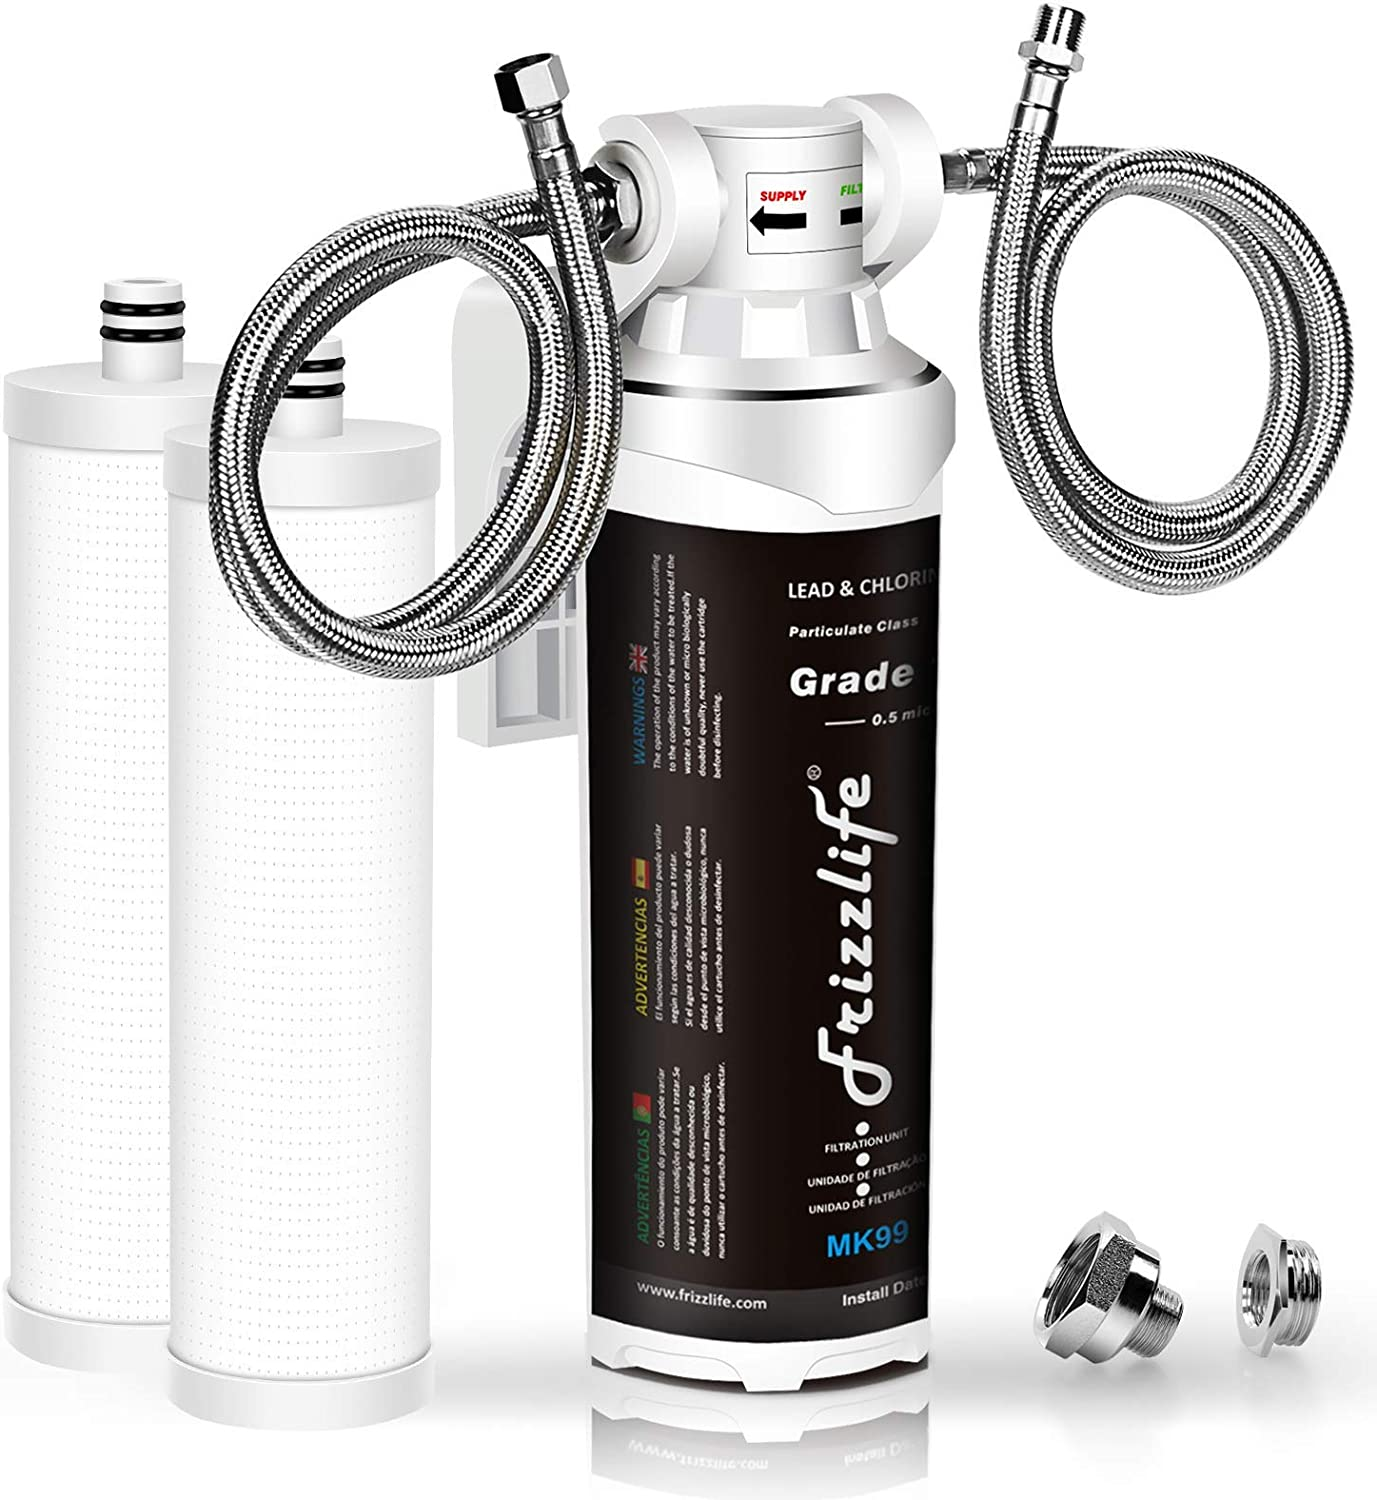 Frizzlife Under Sink Water Filter System-High Capacity Direct Connect Under Counter Drinking Water Filtration System-0.5 Micron Quick Change, 1 Extra Filter Included.